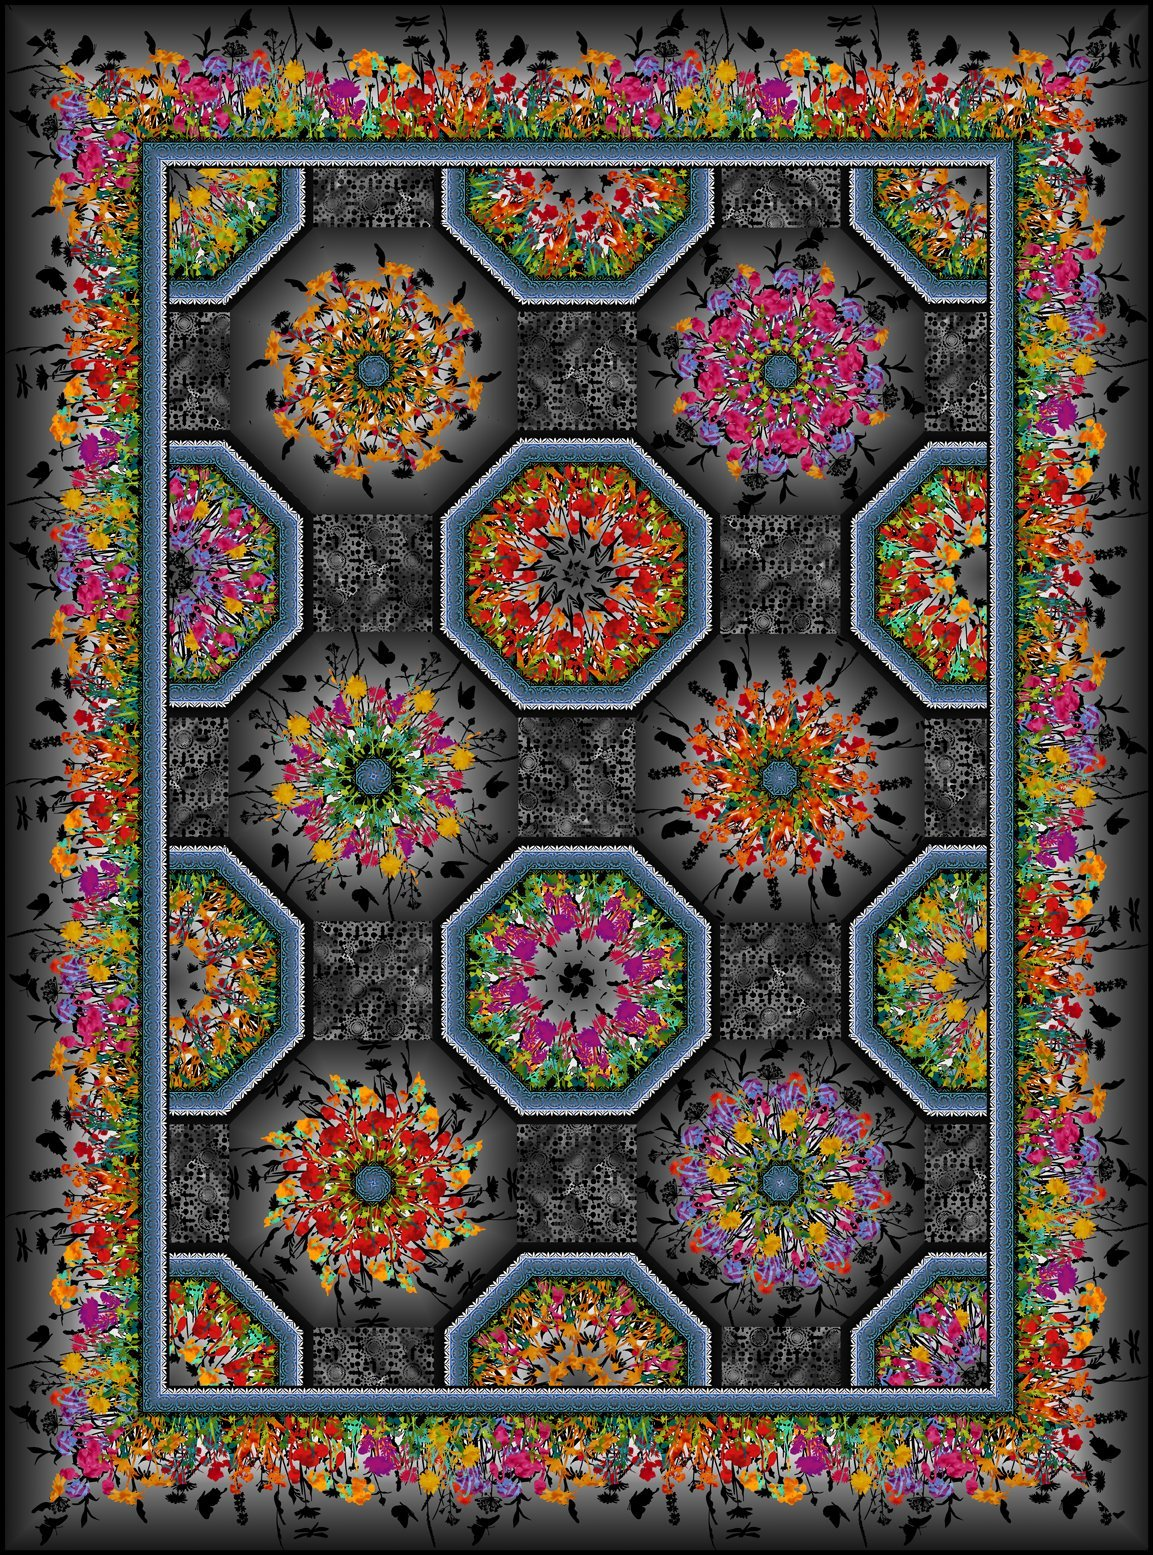 Dreamscapes II Quilt KIT - Multi/Black - In the Beginning